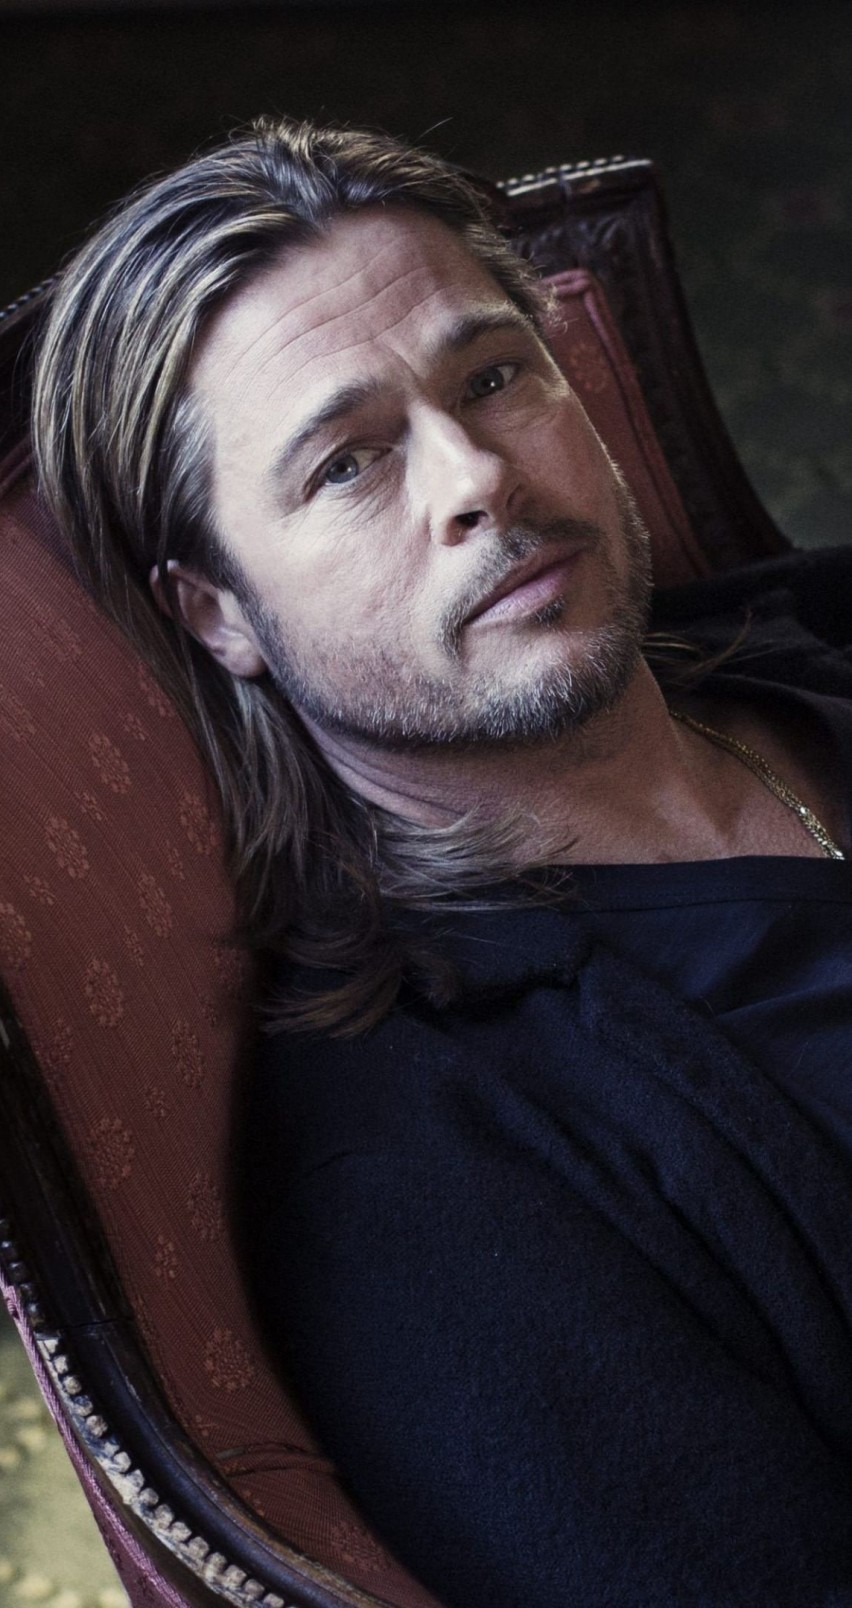 Brad Pitt Sitting On Chair Wallpaper for Apple iPhone 6 / 6s